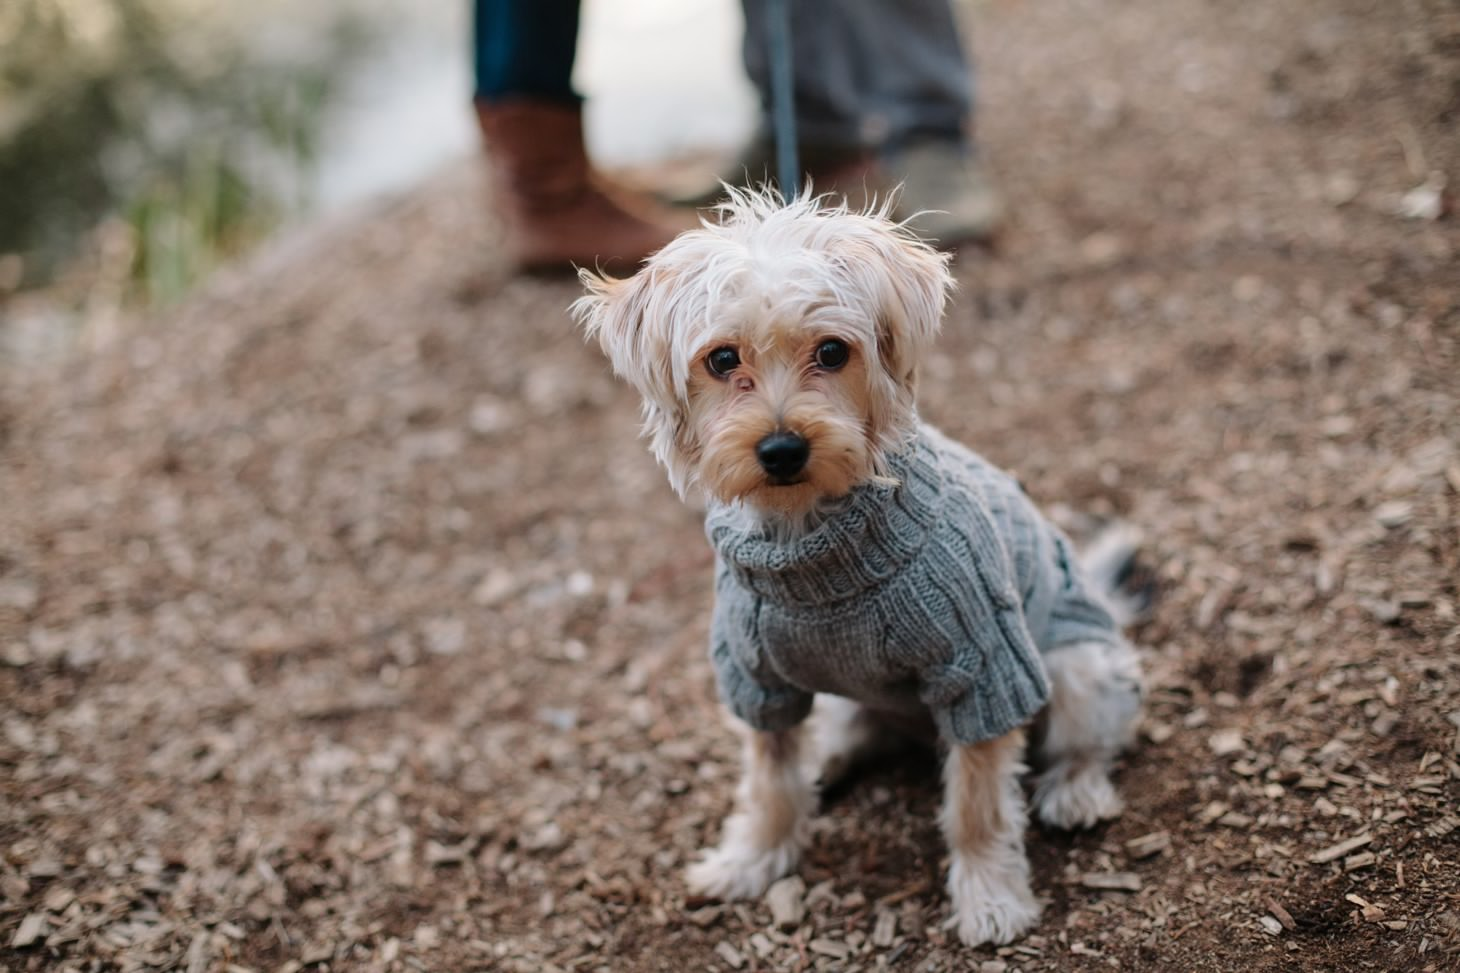 015-nyc-wedding-photographer-puppy-holiday-mini-session-fall-central-park.jpg